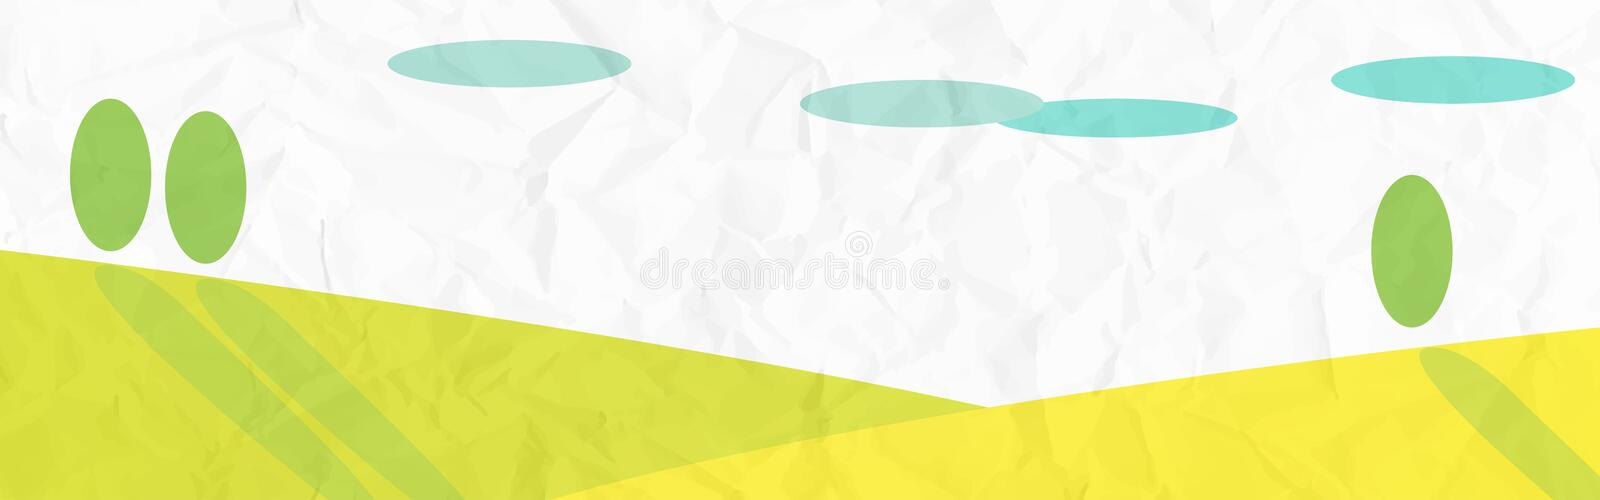 Sunny Banner. Vectored illustration of a sunny landscape, over the hills royalty free illustration